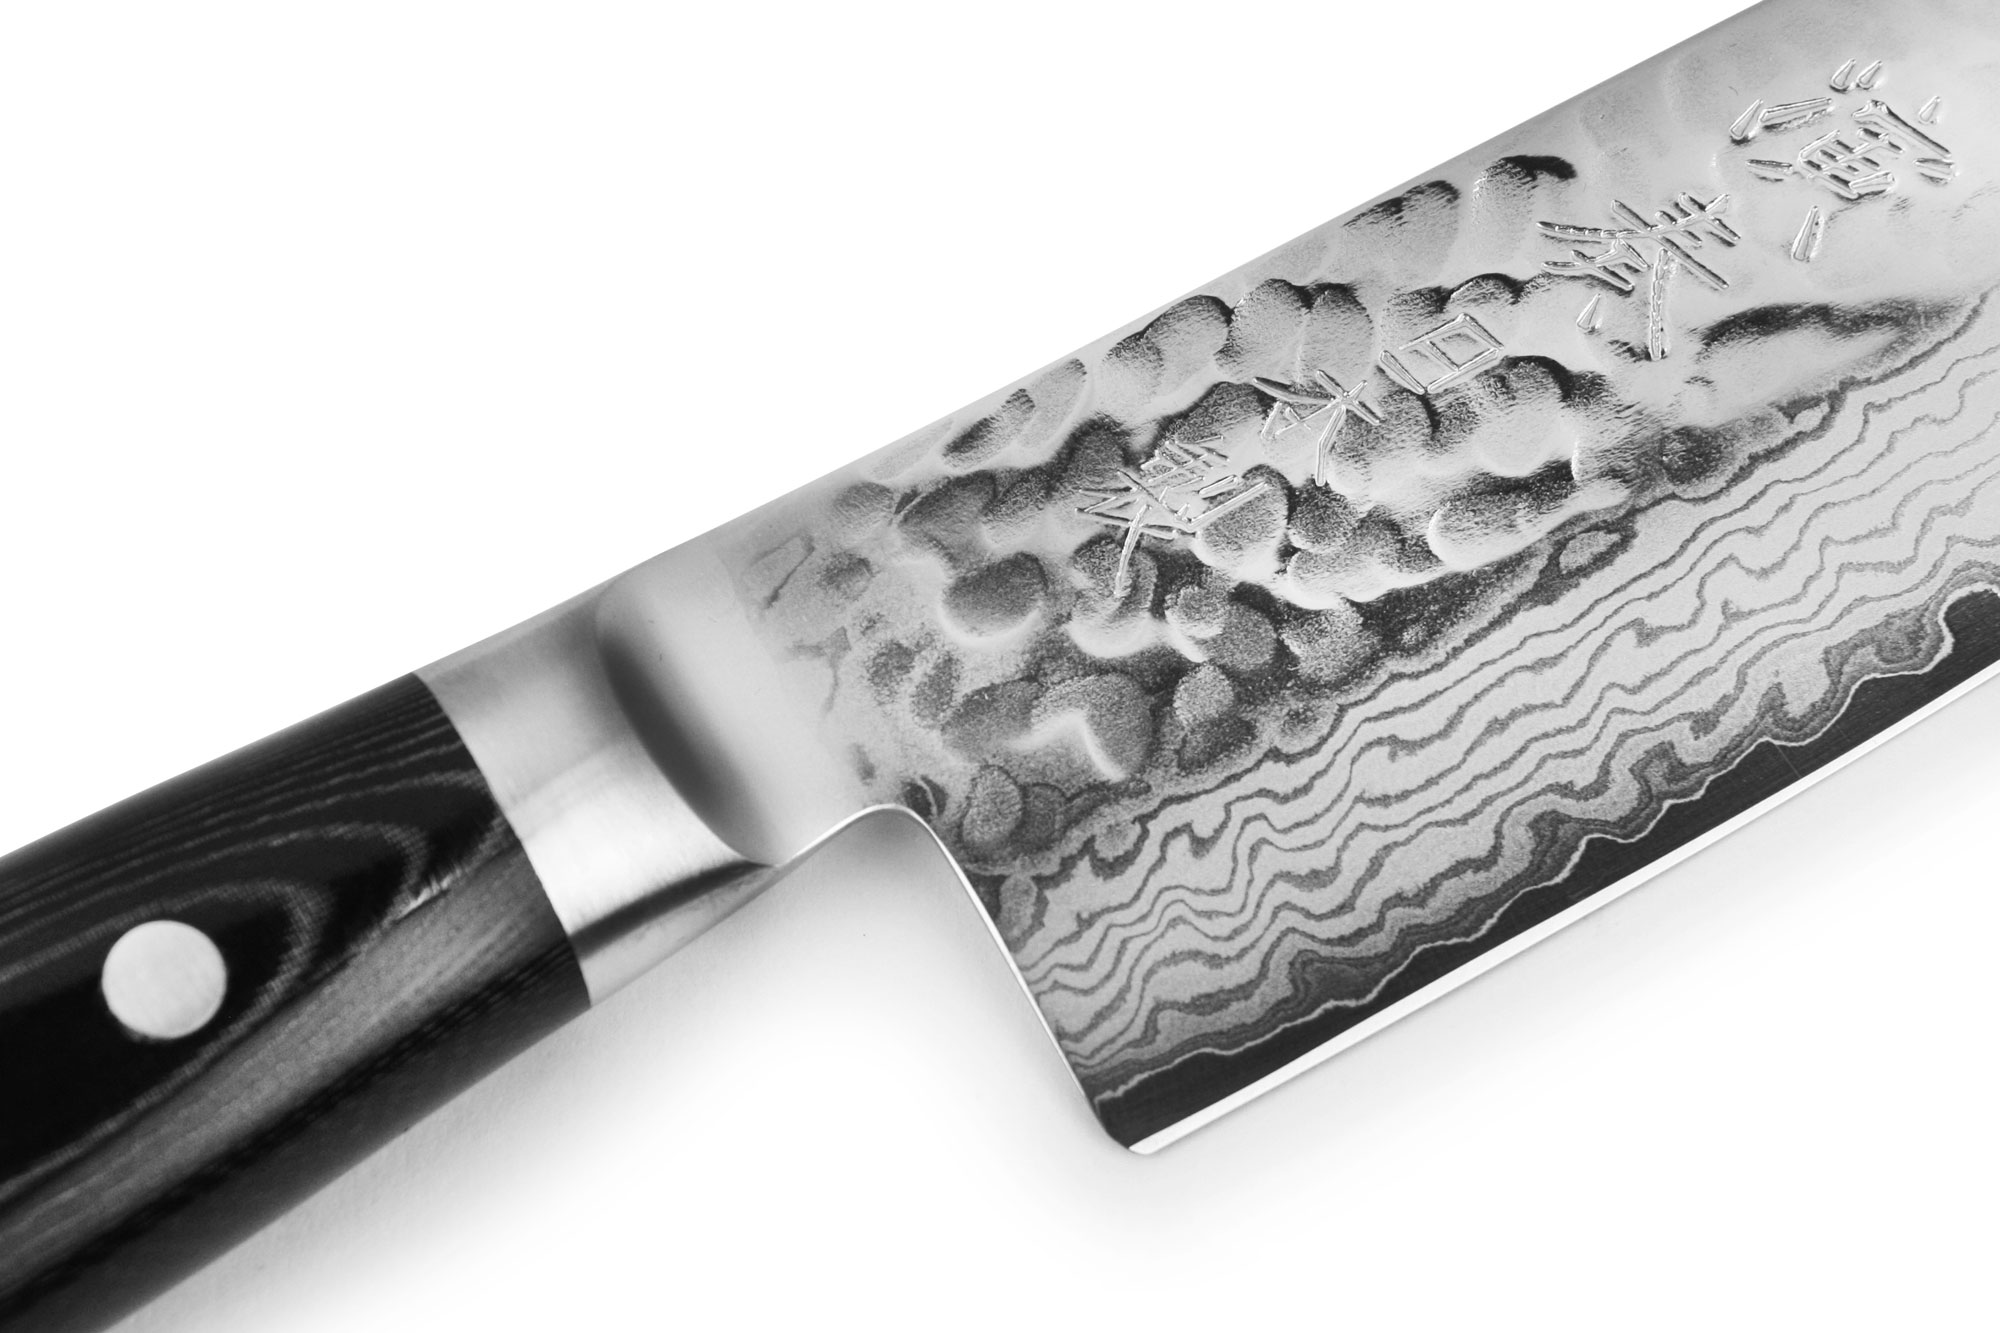 Enso Hd Hammered Damascus Chef S Knife 10 Inch Japanese